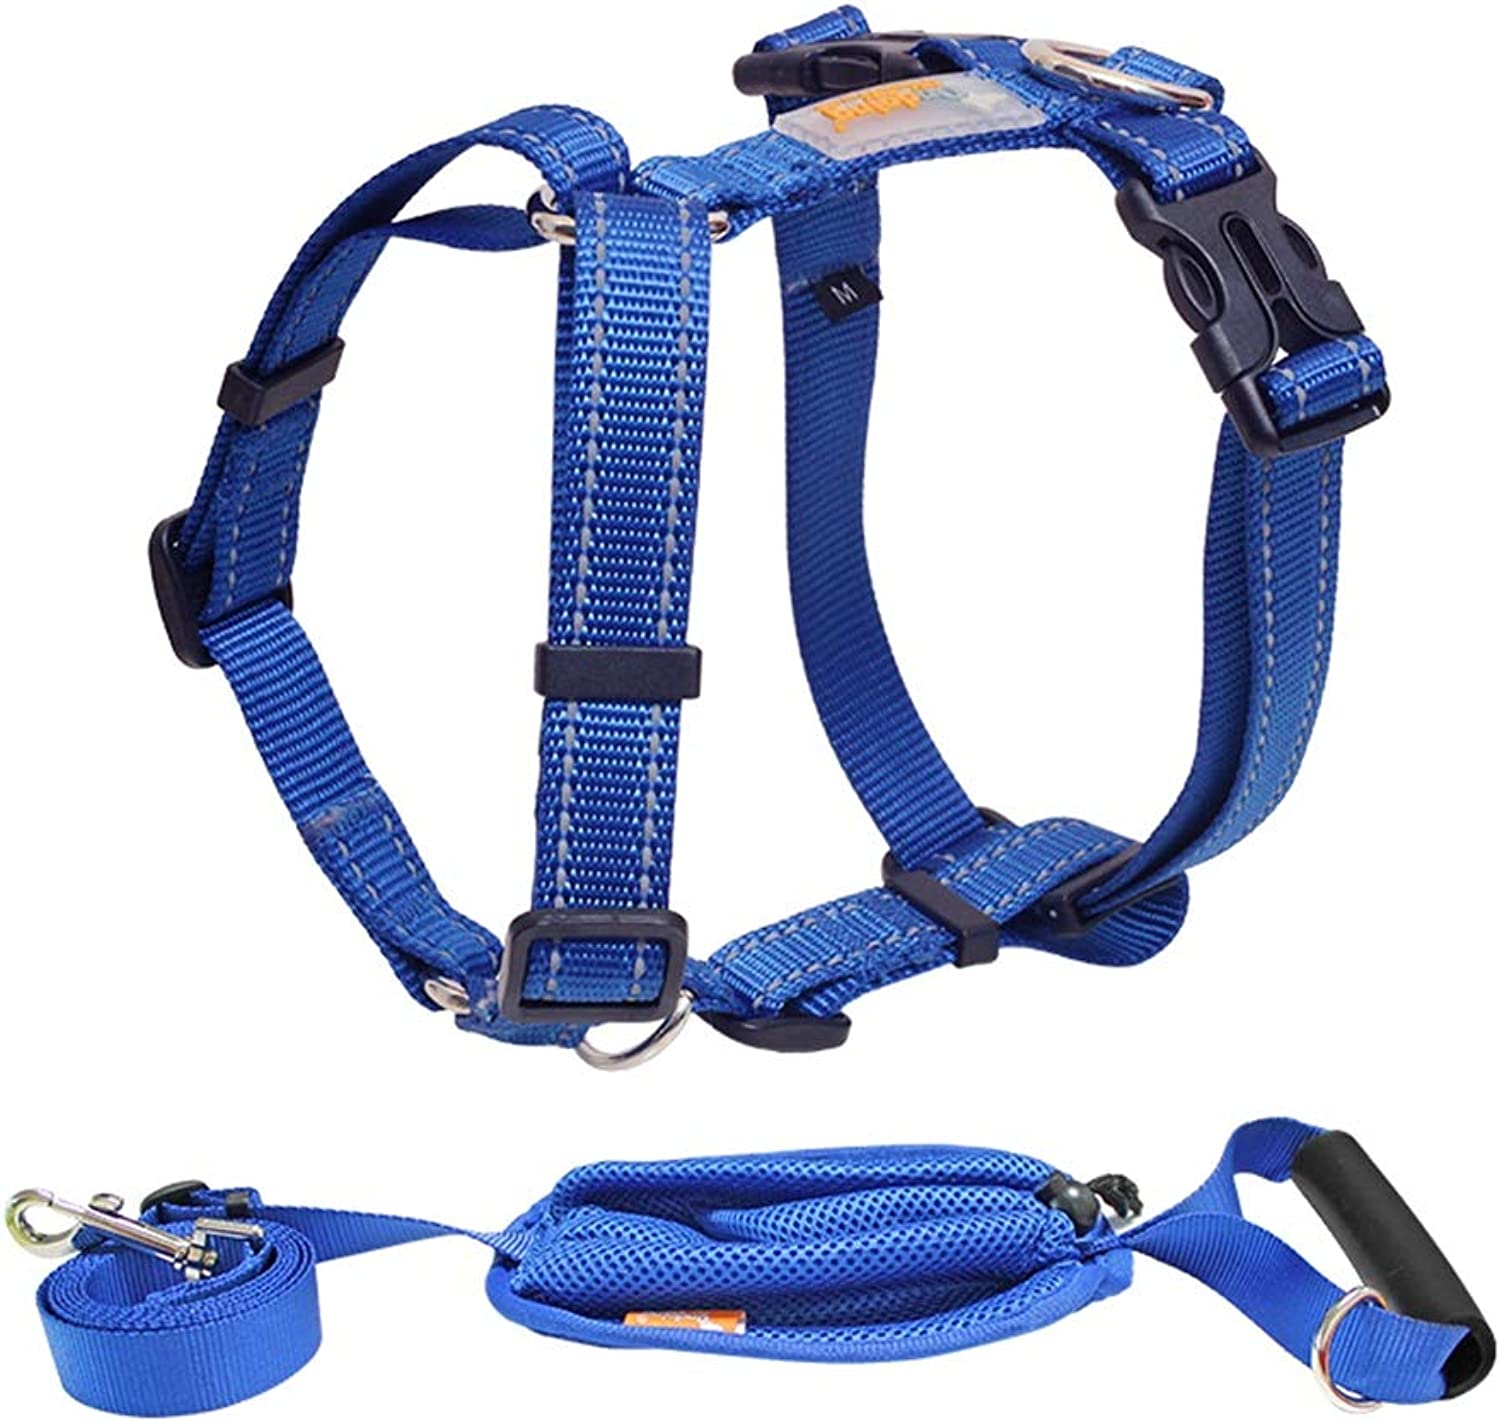 Dog Vest Harness, Chest Strap Traction Leash Outdoor Training Walk Run Adjustable Neck Chest Safety Buffer Chain for Puppy Small Medium Teddy (color   bluee and Leash, Size   L(4260cm))